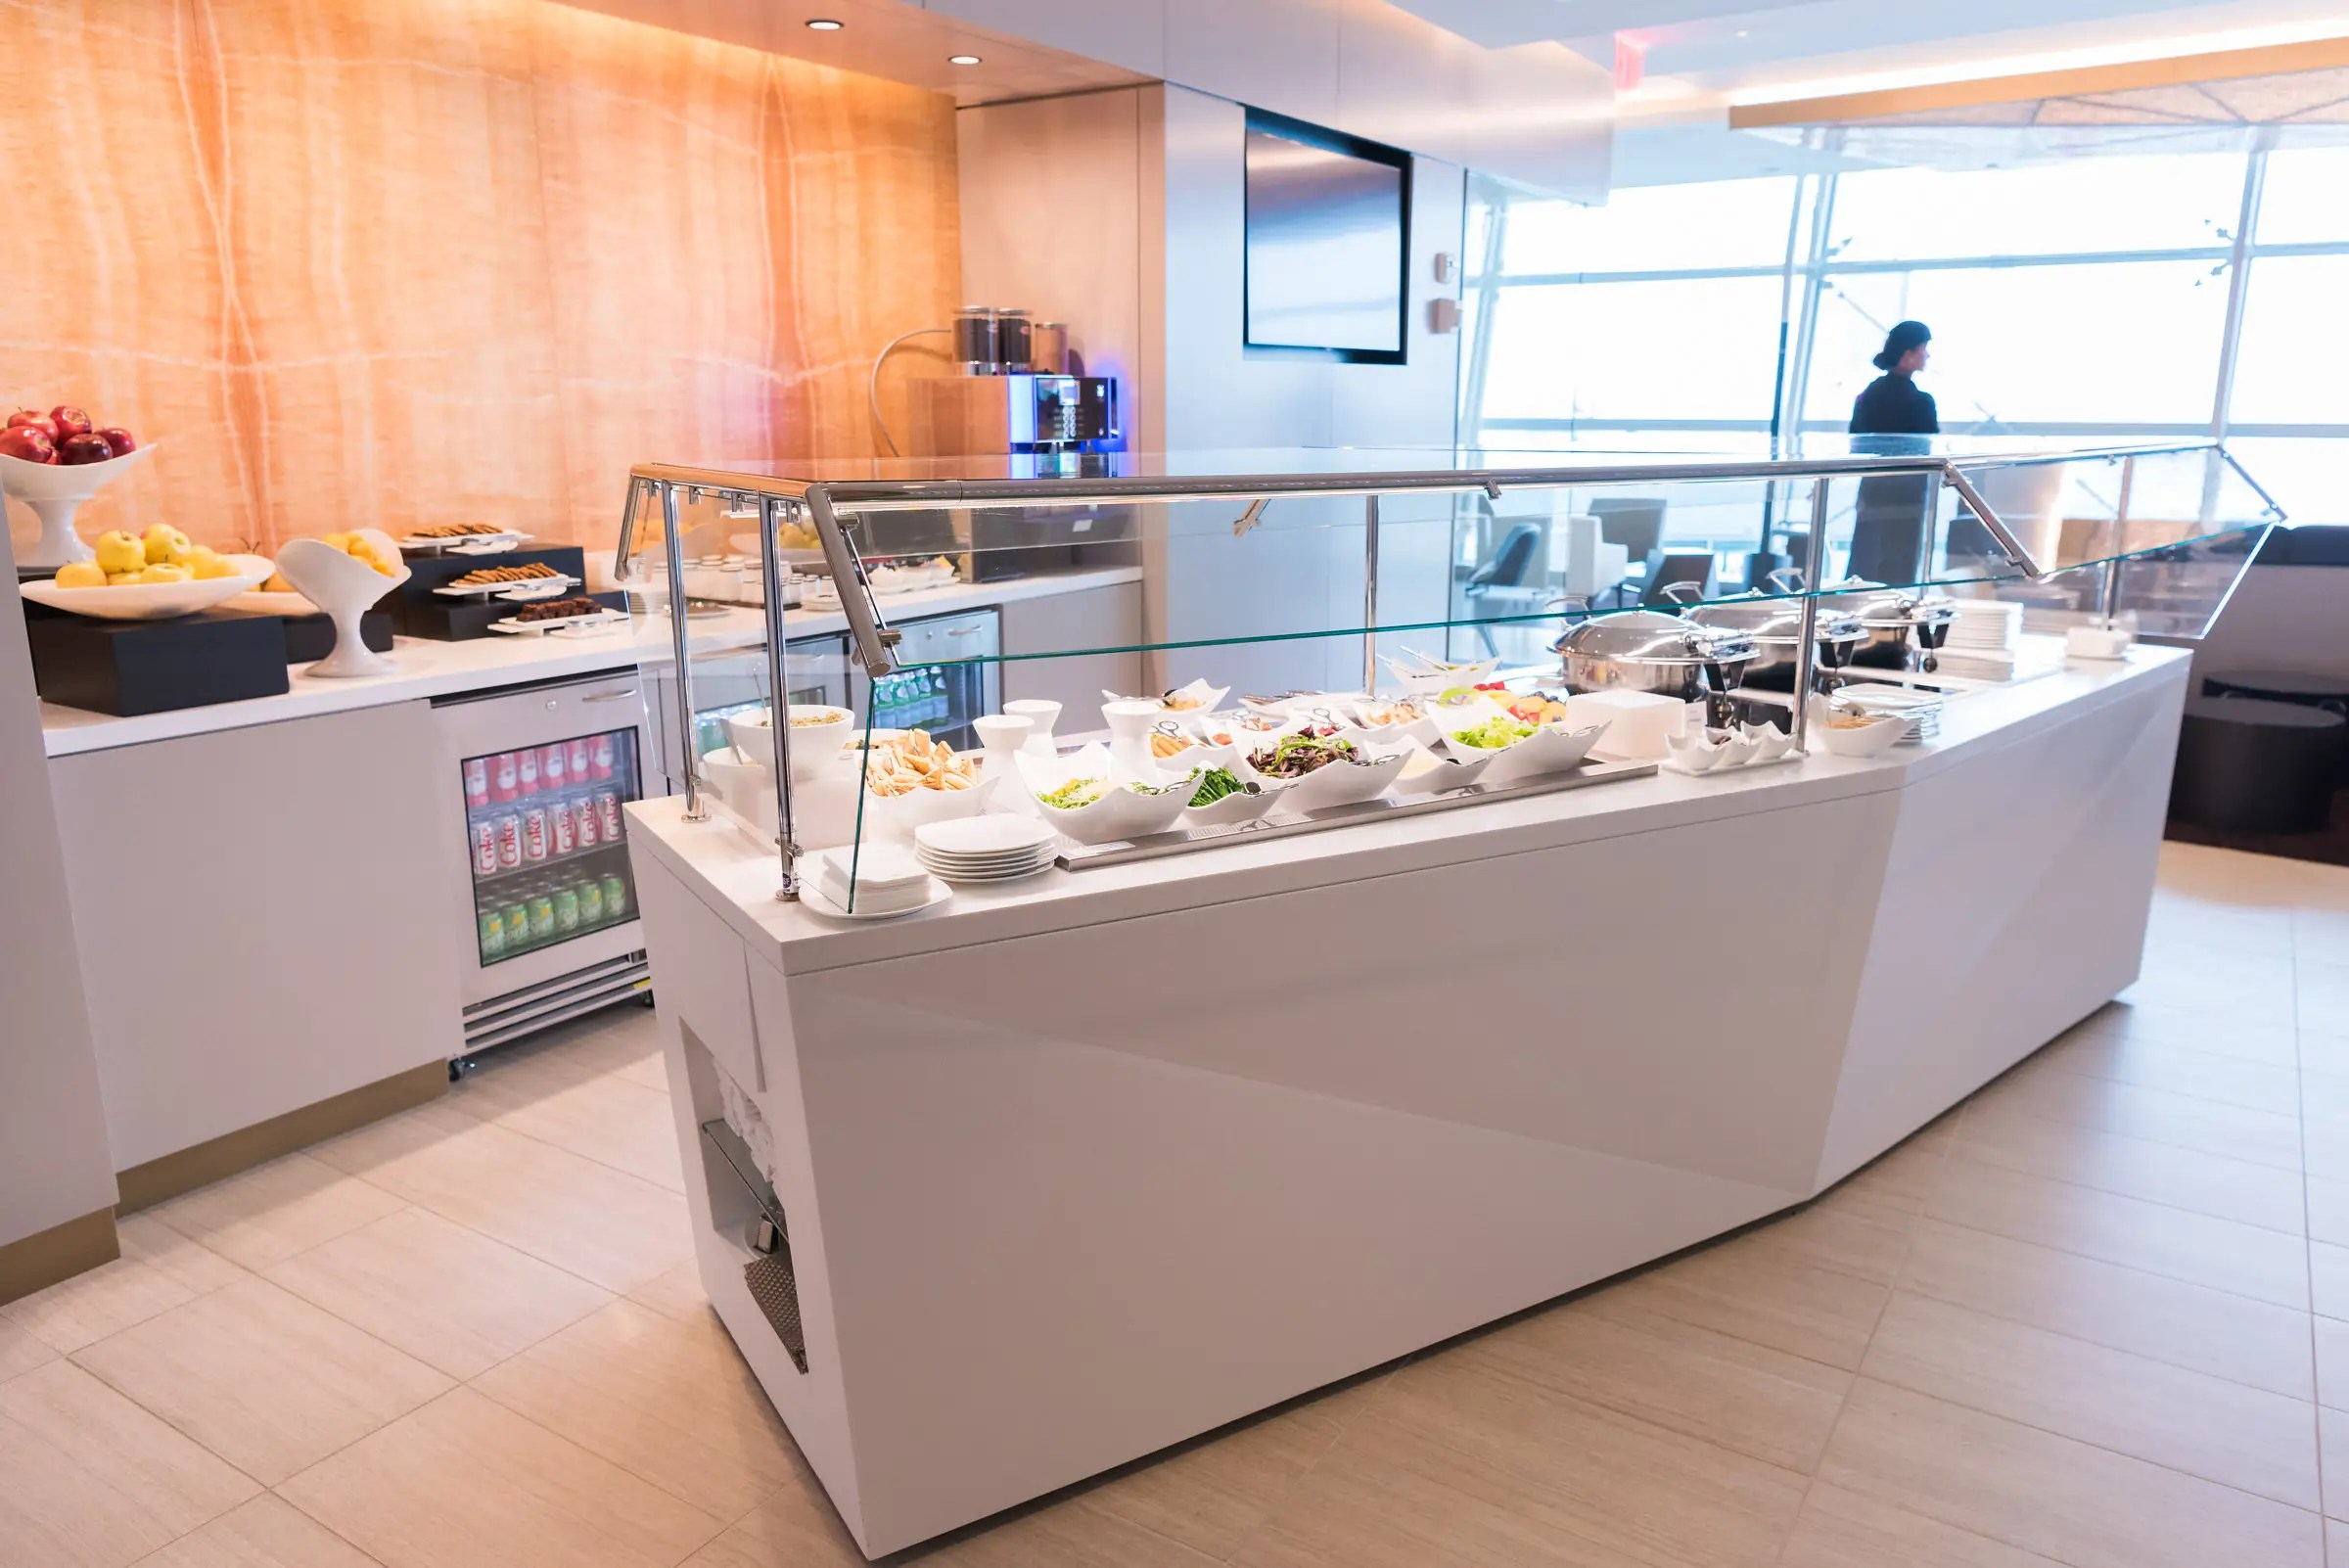 Guests are treated to a variety of dishes available in a buffet or a la carte.